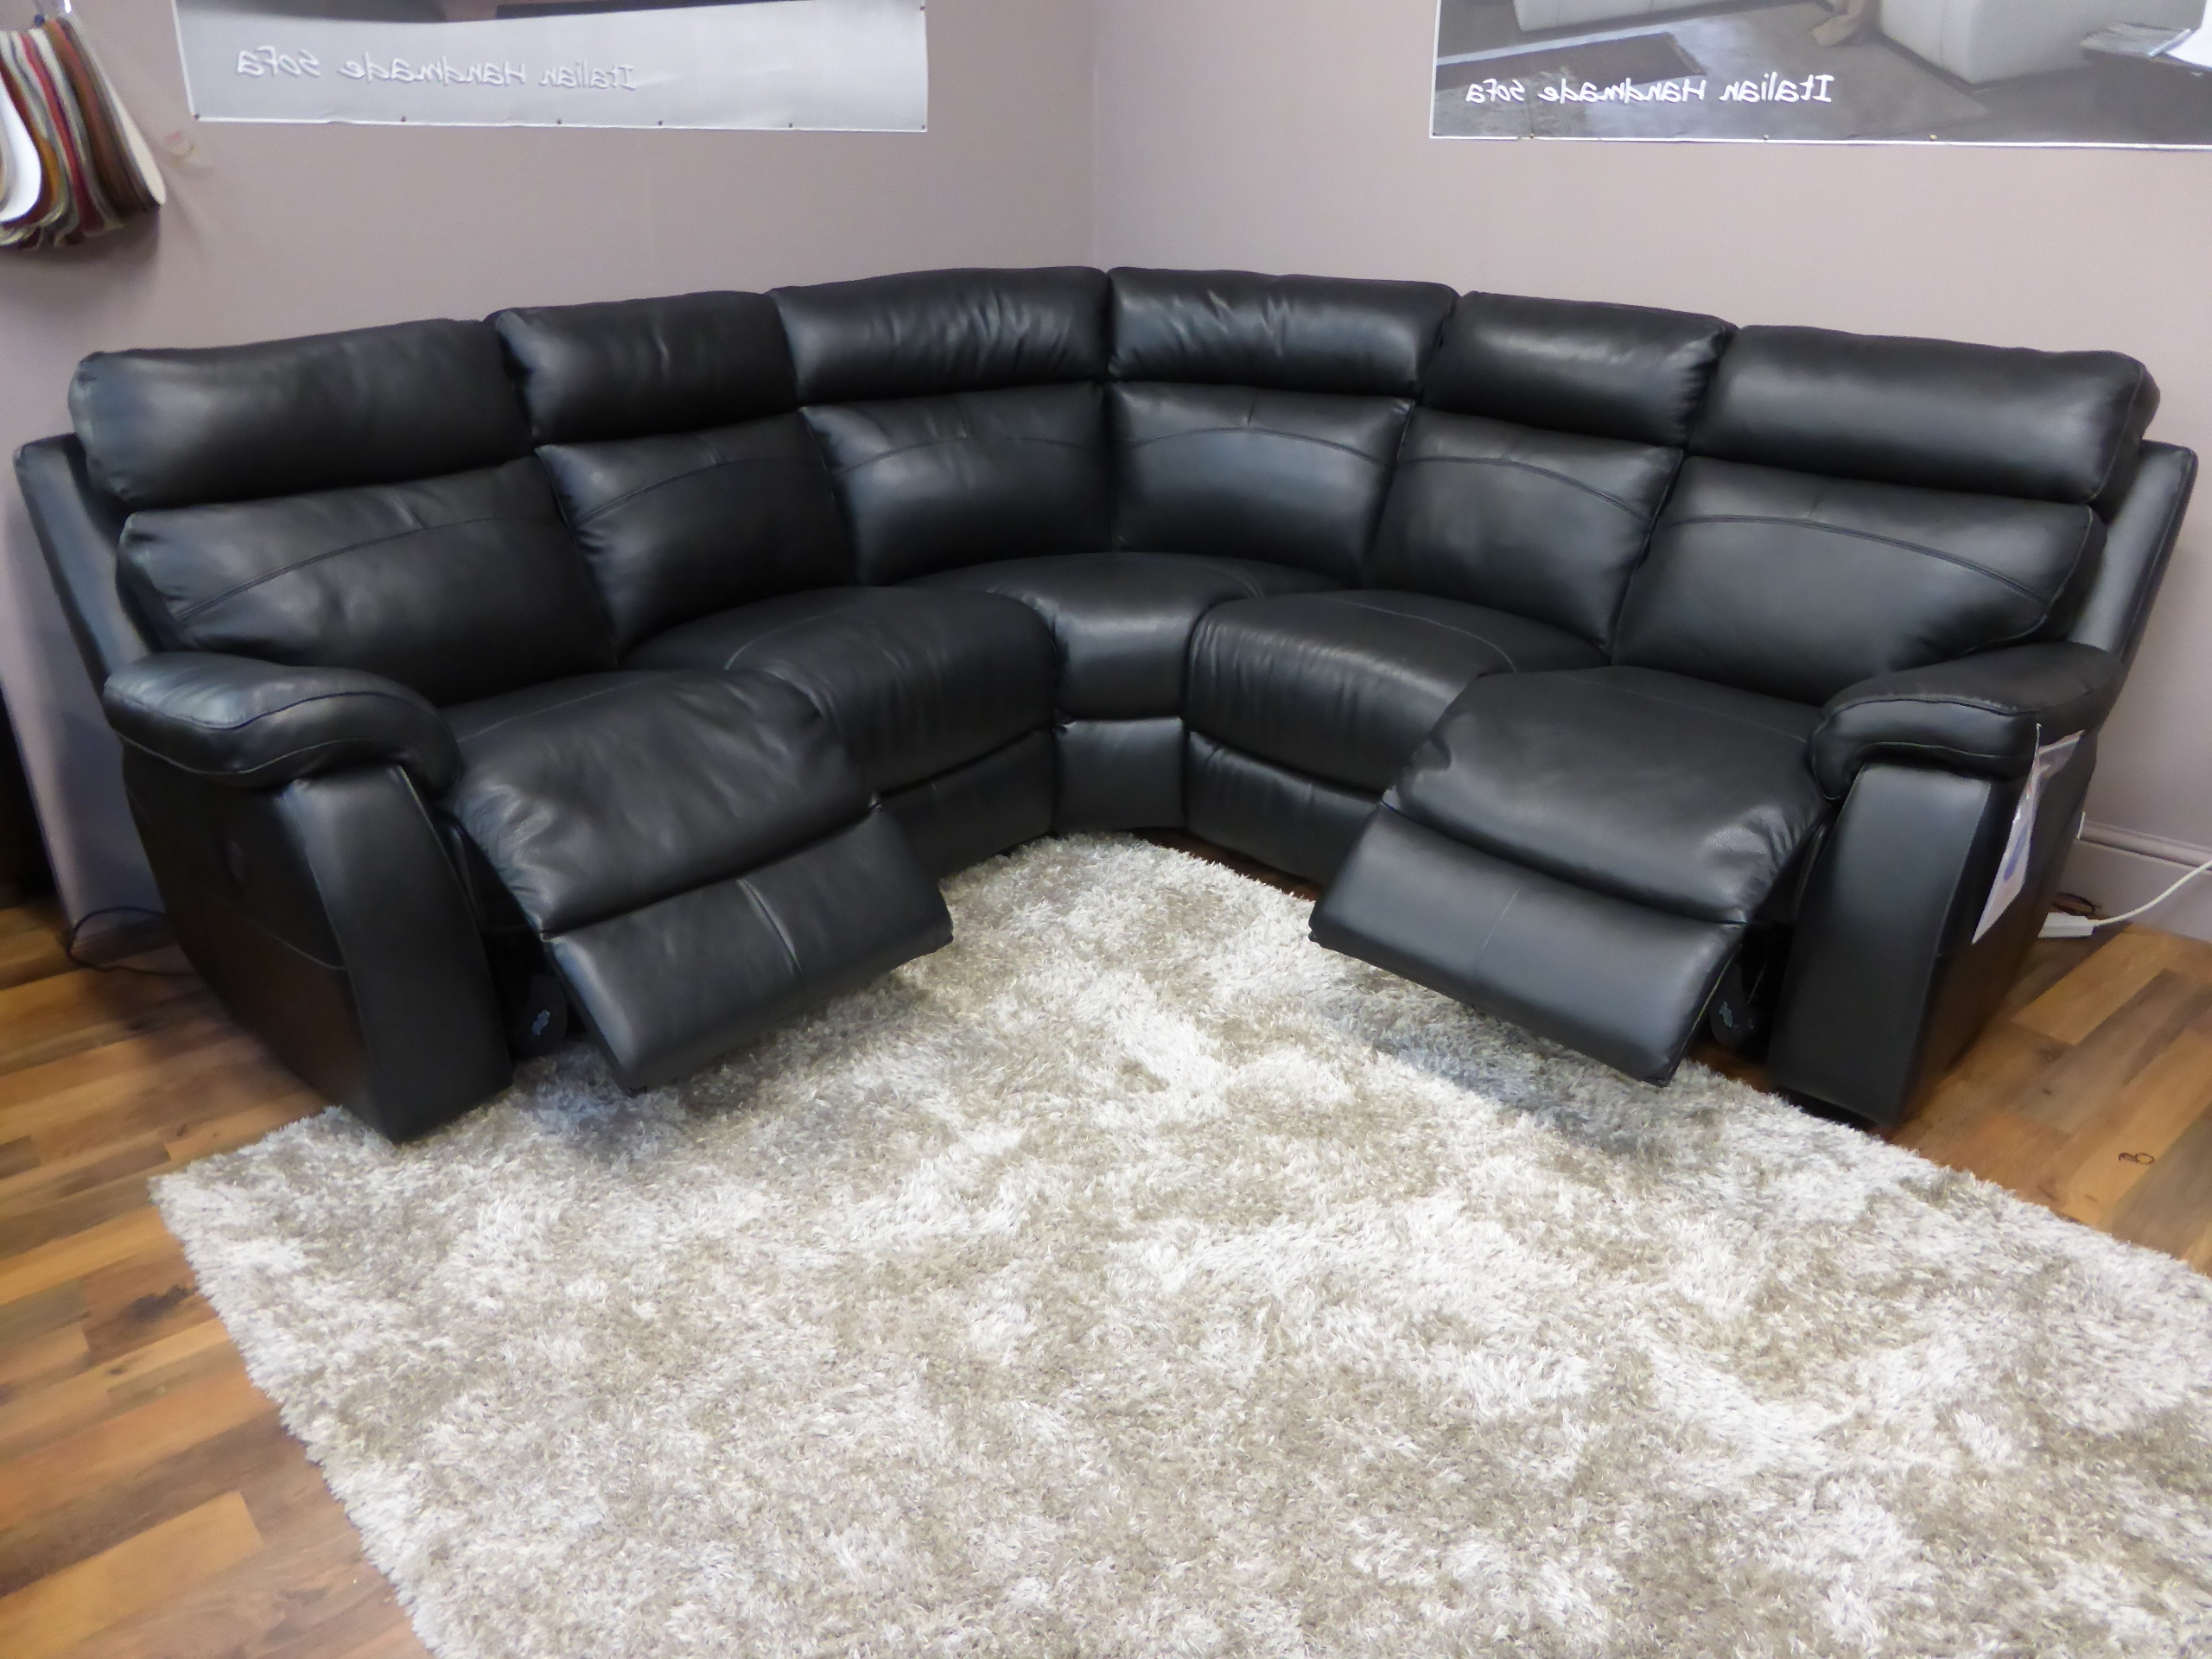 Lazy Boy Chaises In Well Known Lazy Boy Sofa Beds – Visionexchange (View 12 of 15)